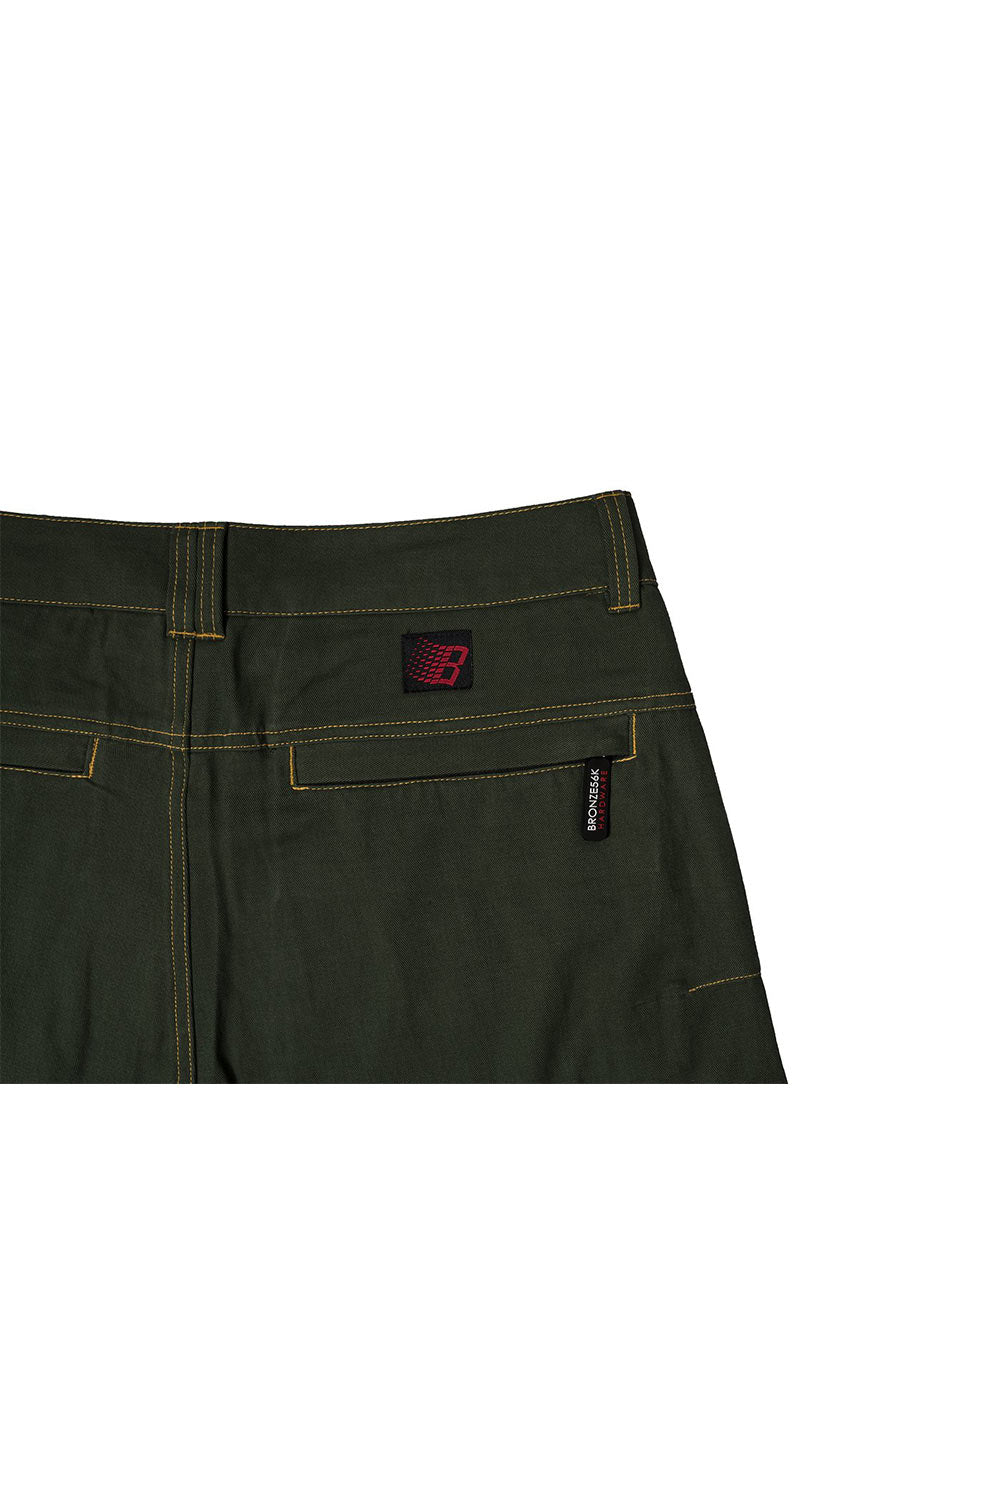 Bronze 56K Zip Tech Pants - Green